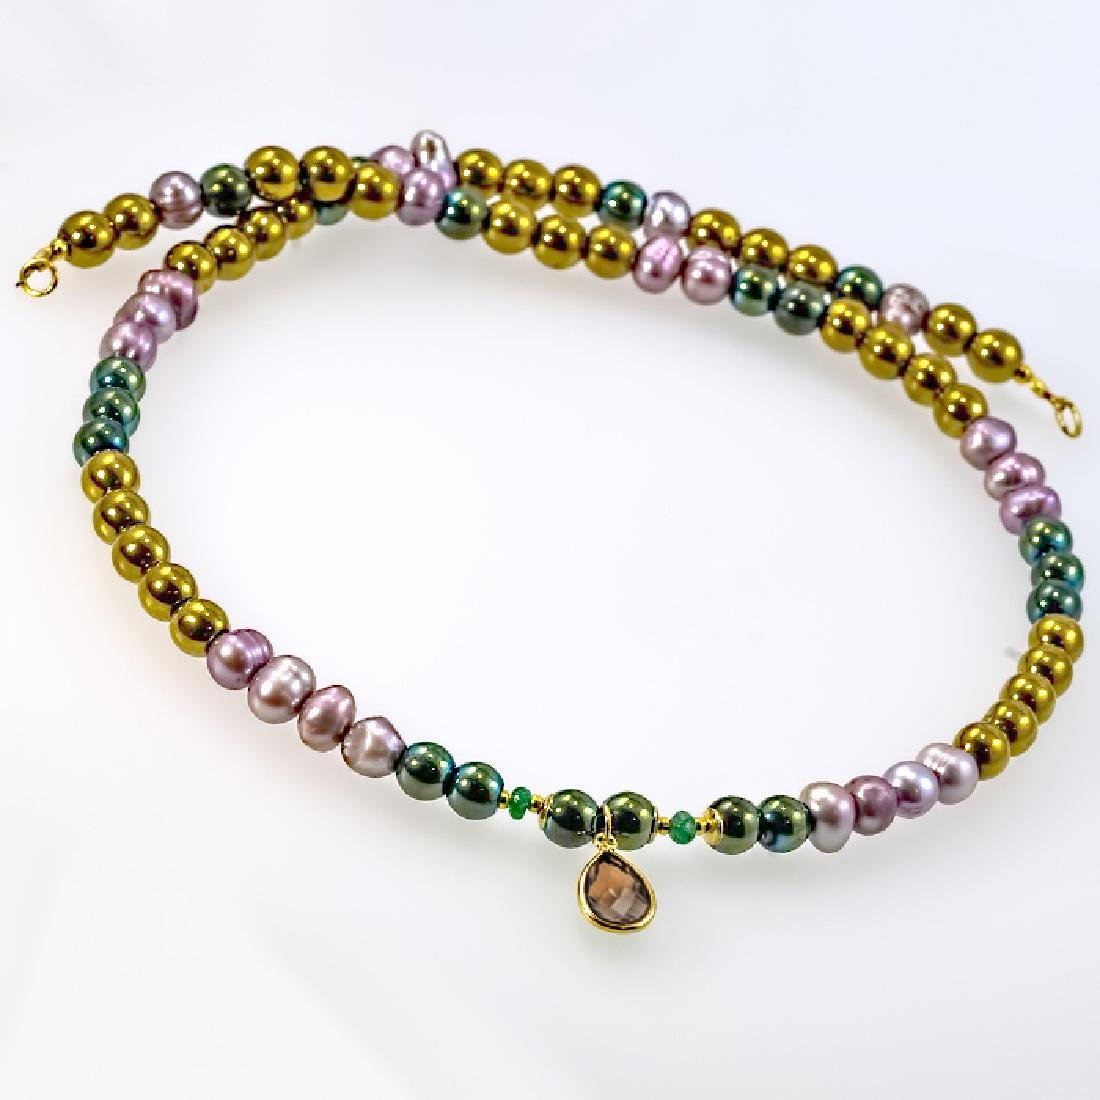 14K Multi-color Necklace with Emerald and Ash Topaz - 3